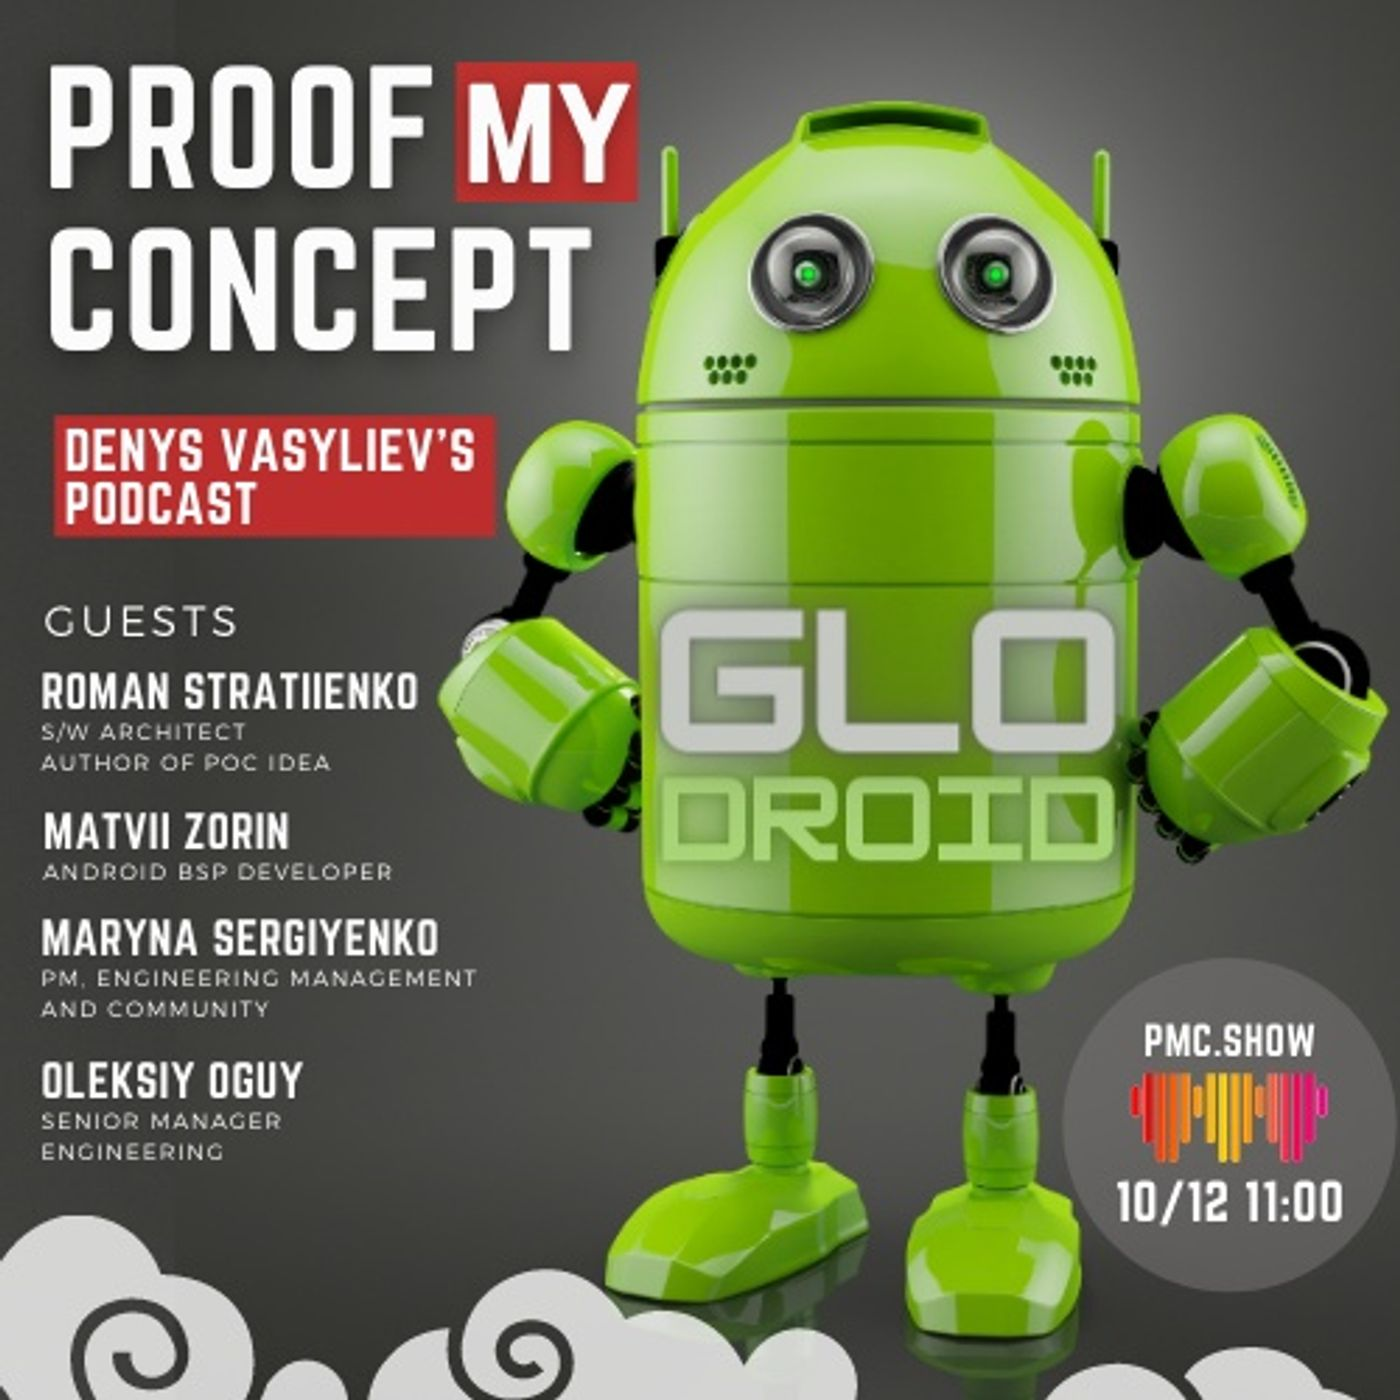 #44 GloDroid: extend your Android